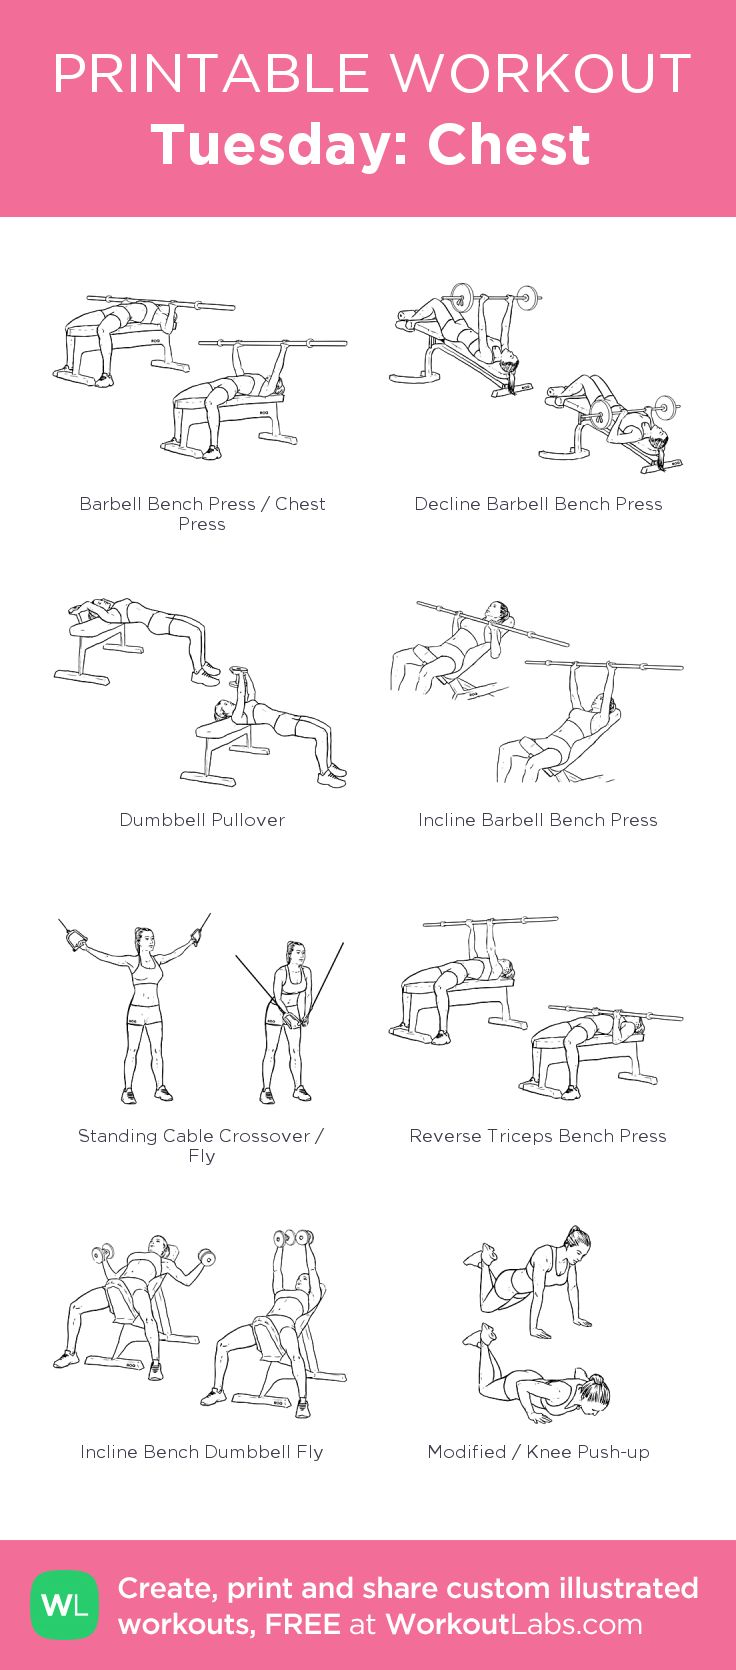 Tuesday: Chest:my visual workout created at WorkoutLabs.com • Click through to customize and download as a FREE PDF! #customworkout